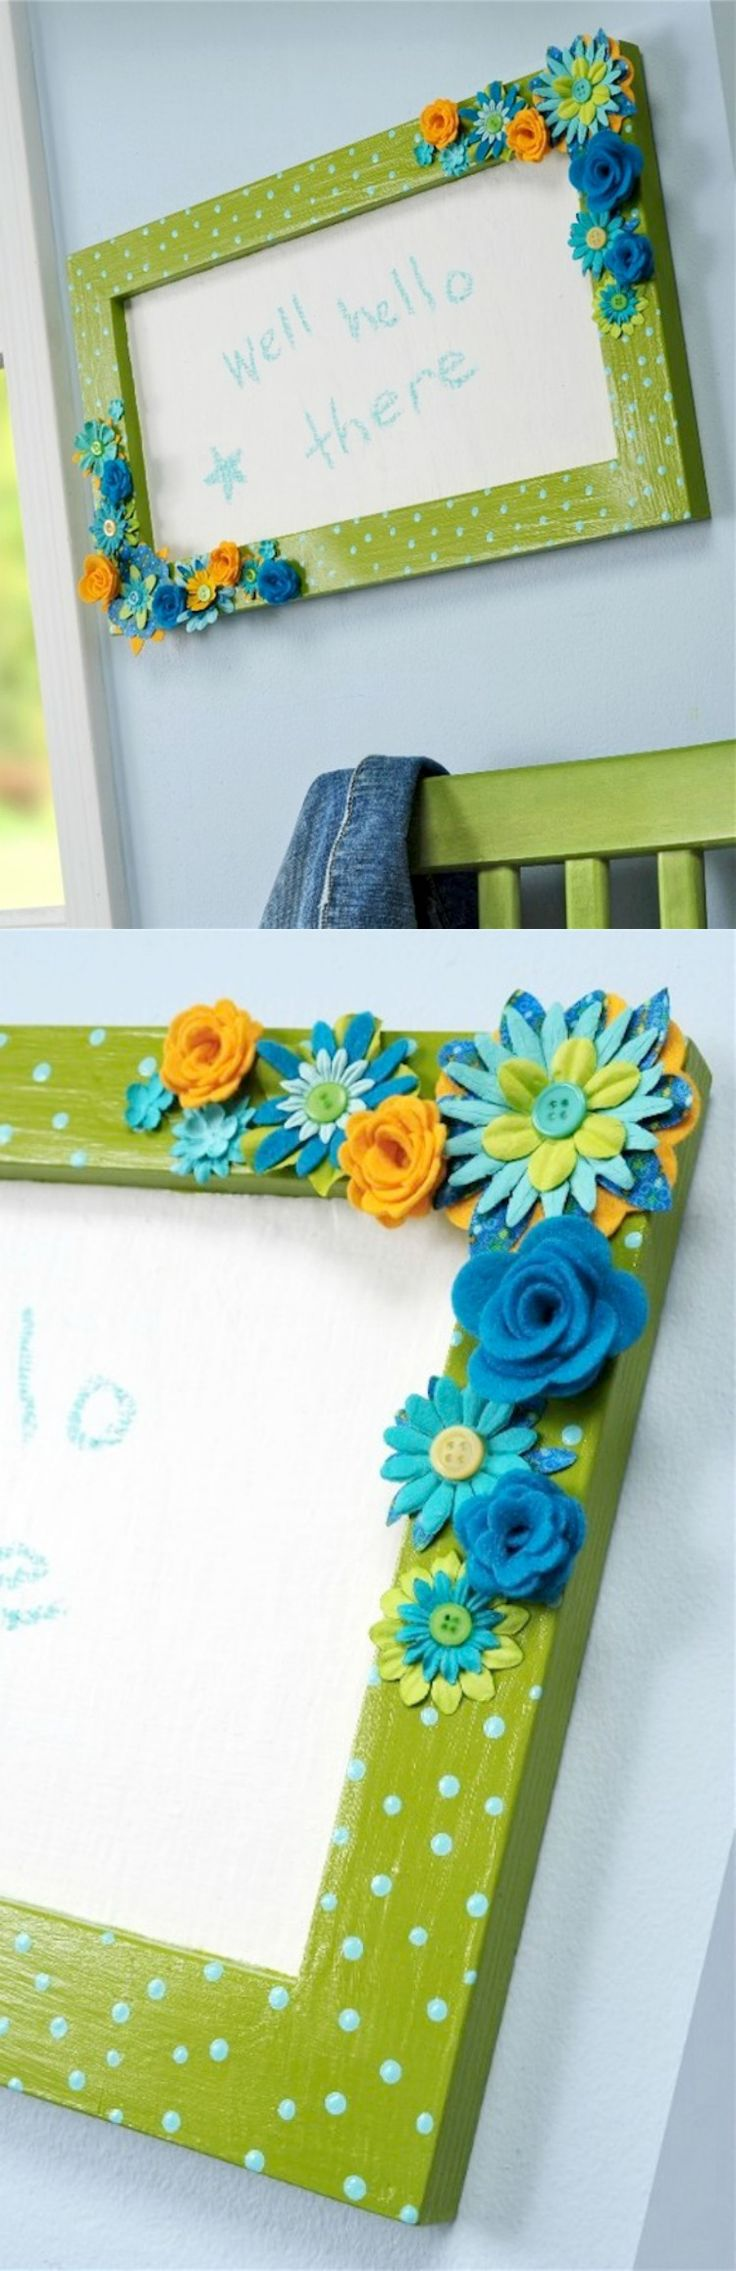 Have you ever heard of white chalkboard paint? It's amazing! This DIY chalkboard was made from an old picture frame and accented with flowers.